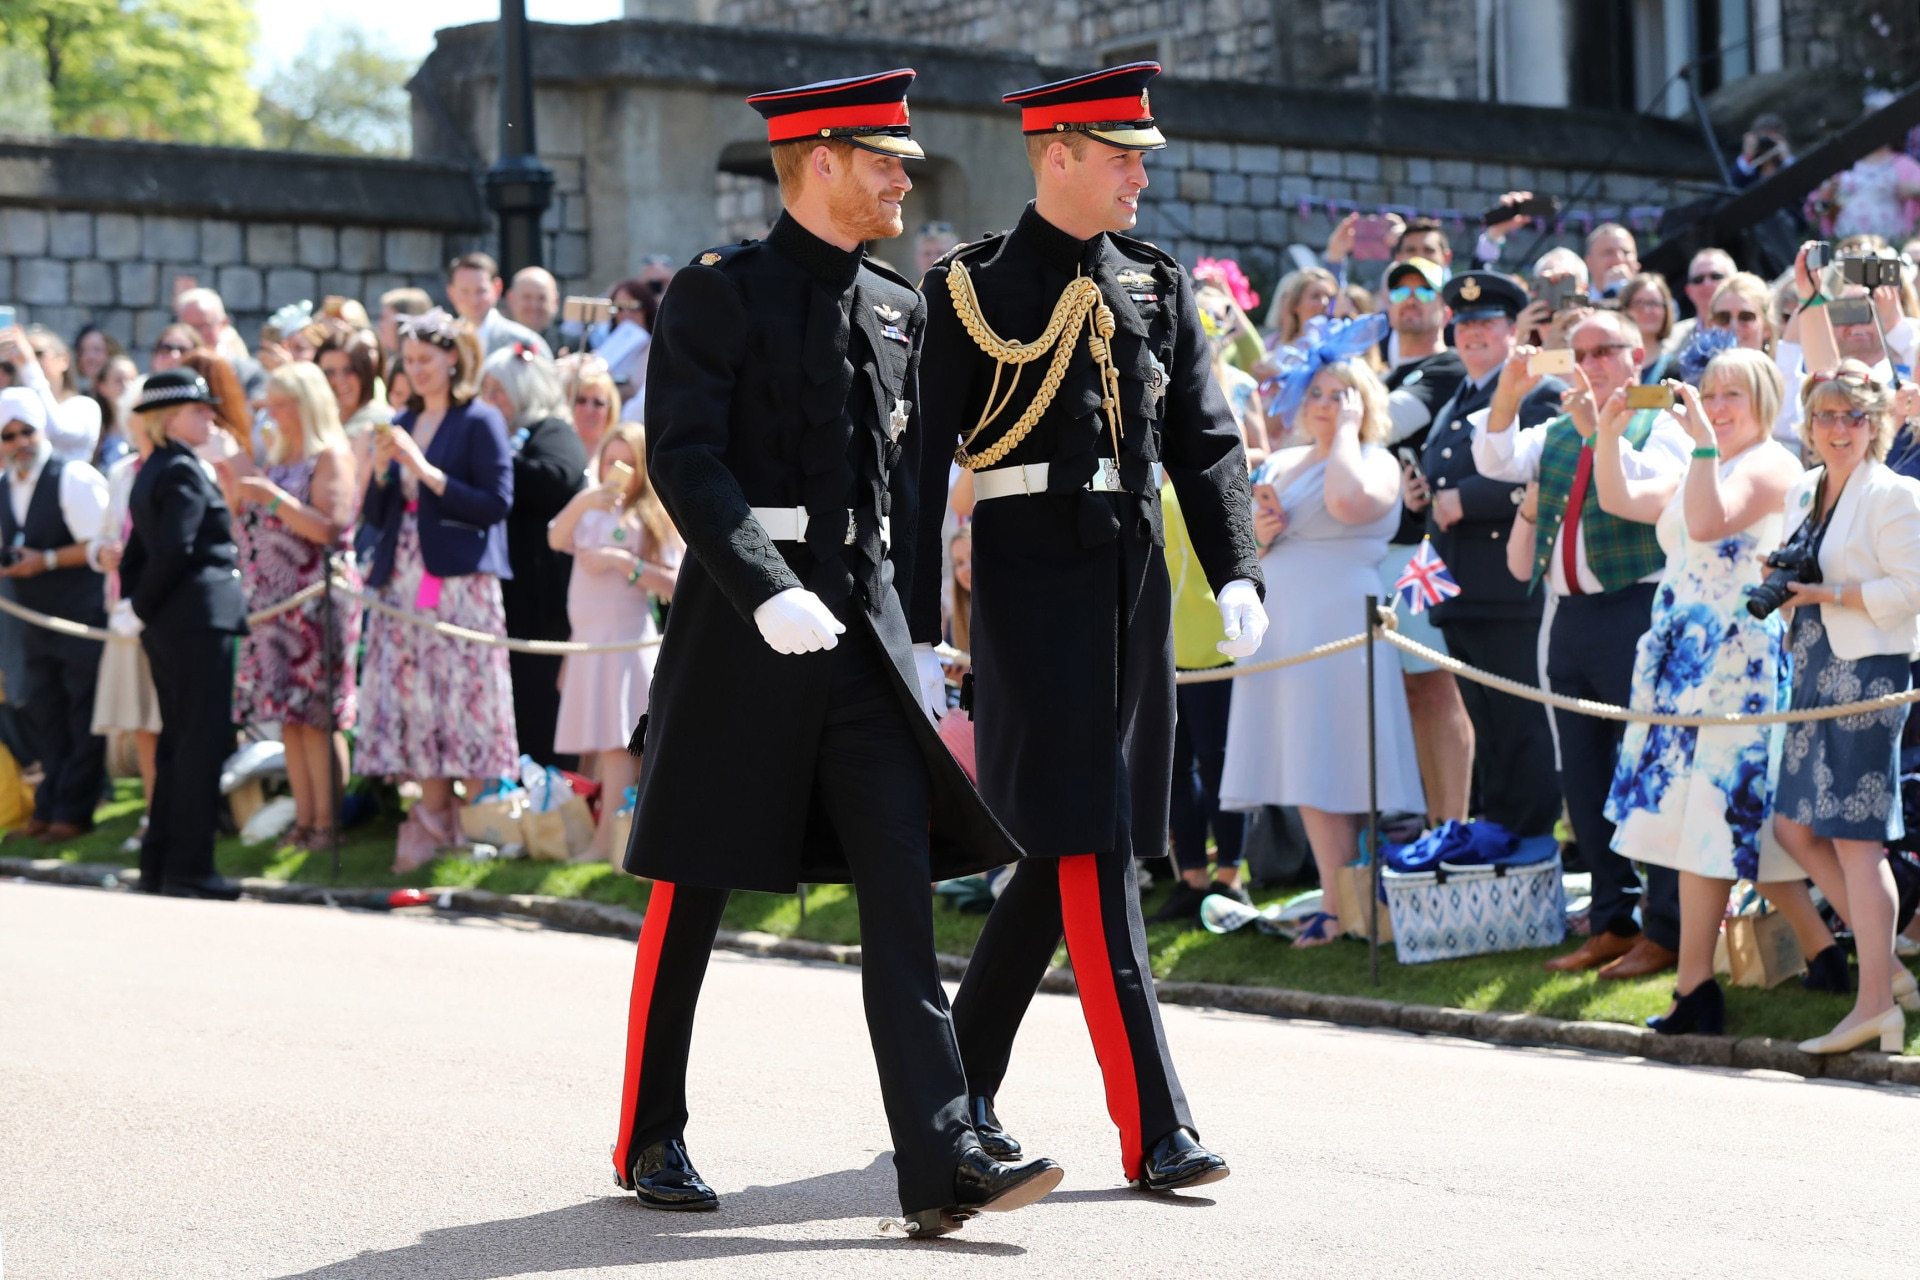 Prince Harry and his best man Prince William just arrived at Windsor Castle for his wedding